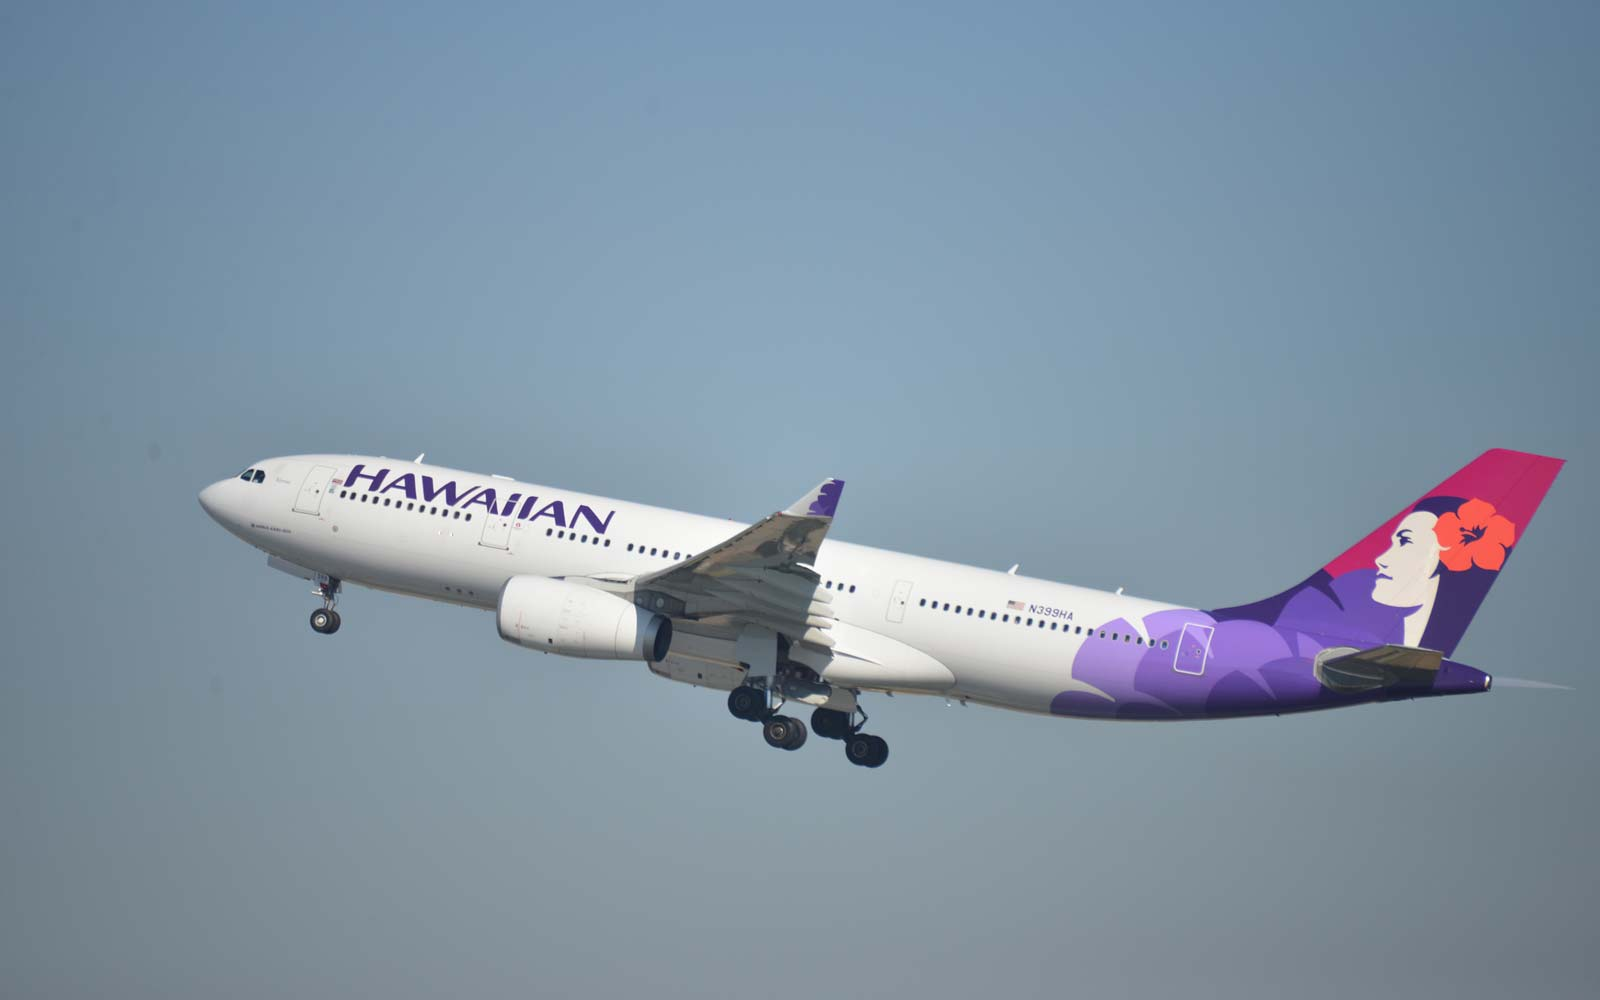 Hawaiian Airlines Plane Makes Emergency Landing After Longtime Flight Attendant Dies Mid-trip